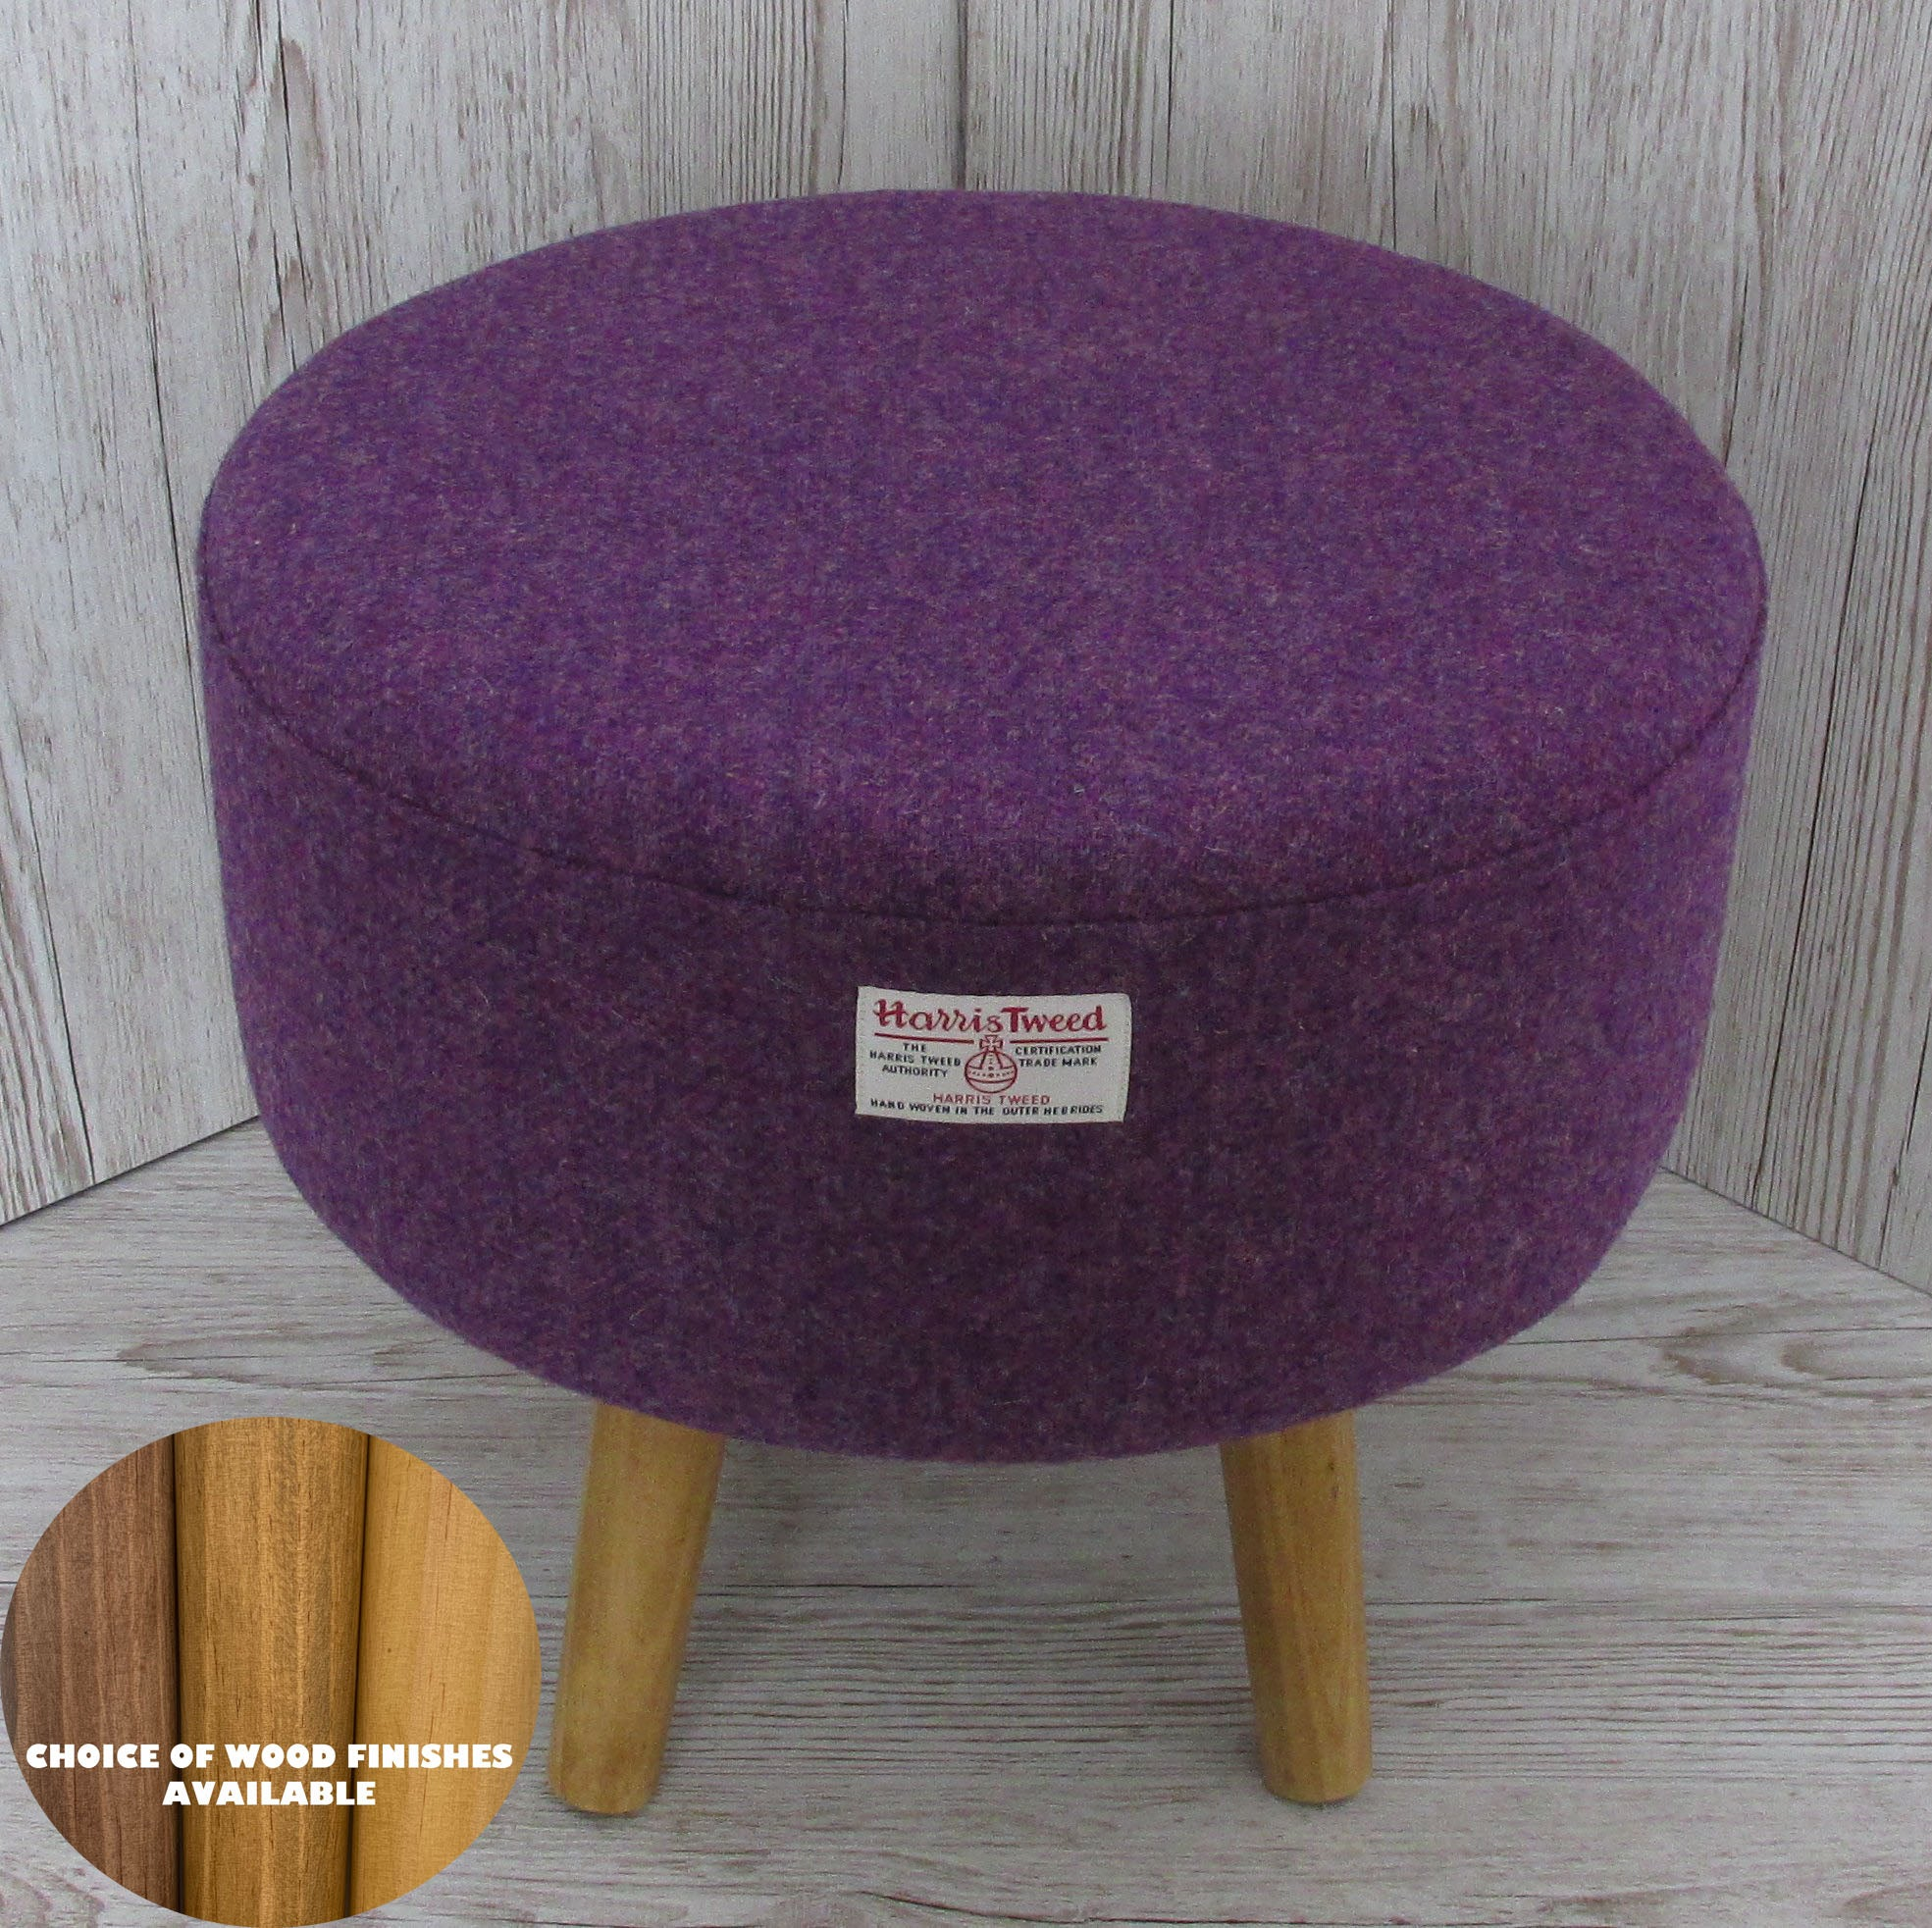 Harris Tweed Heather Purple Footstool